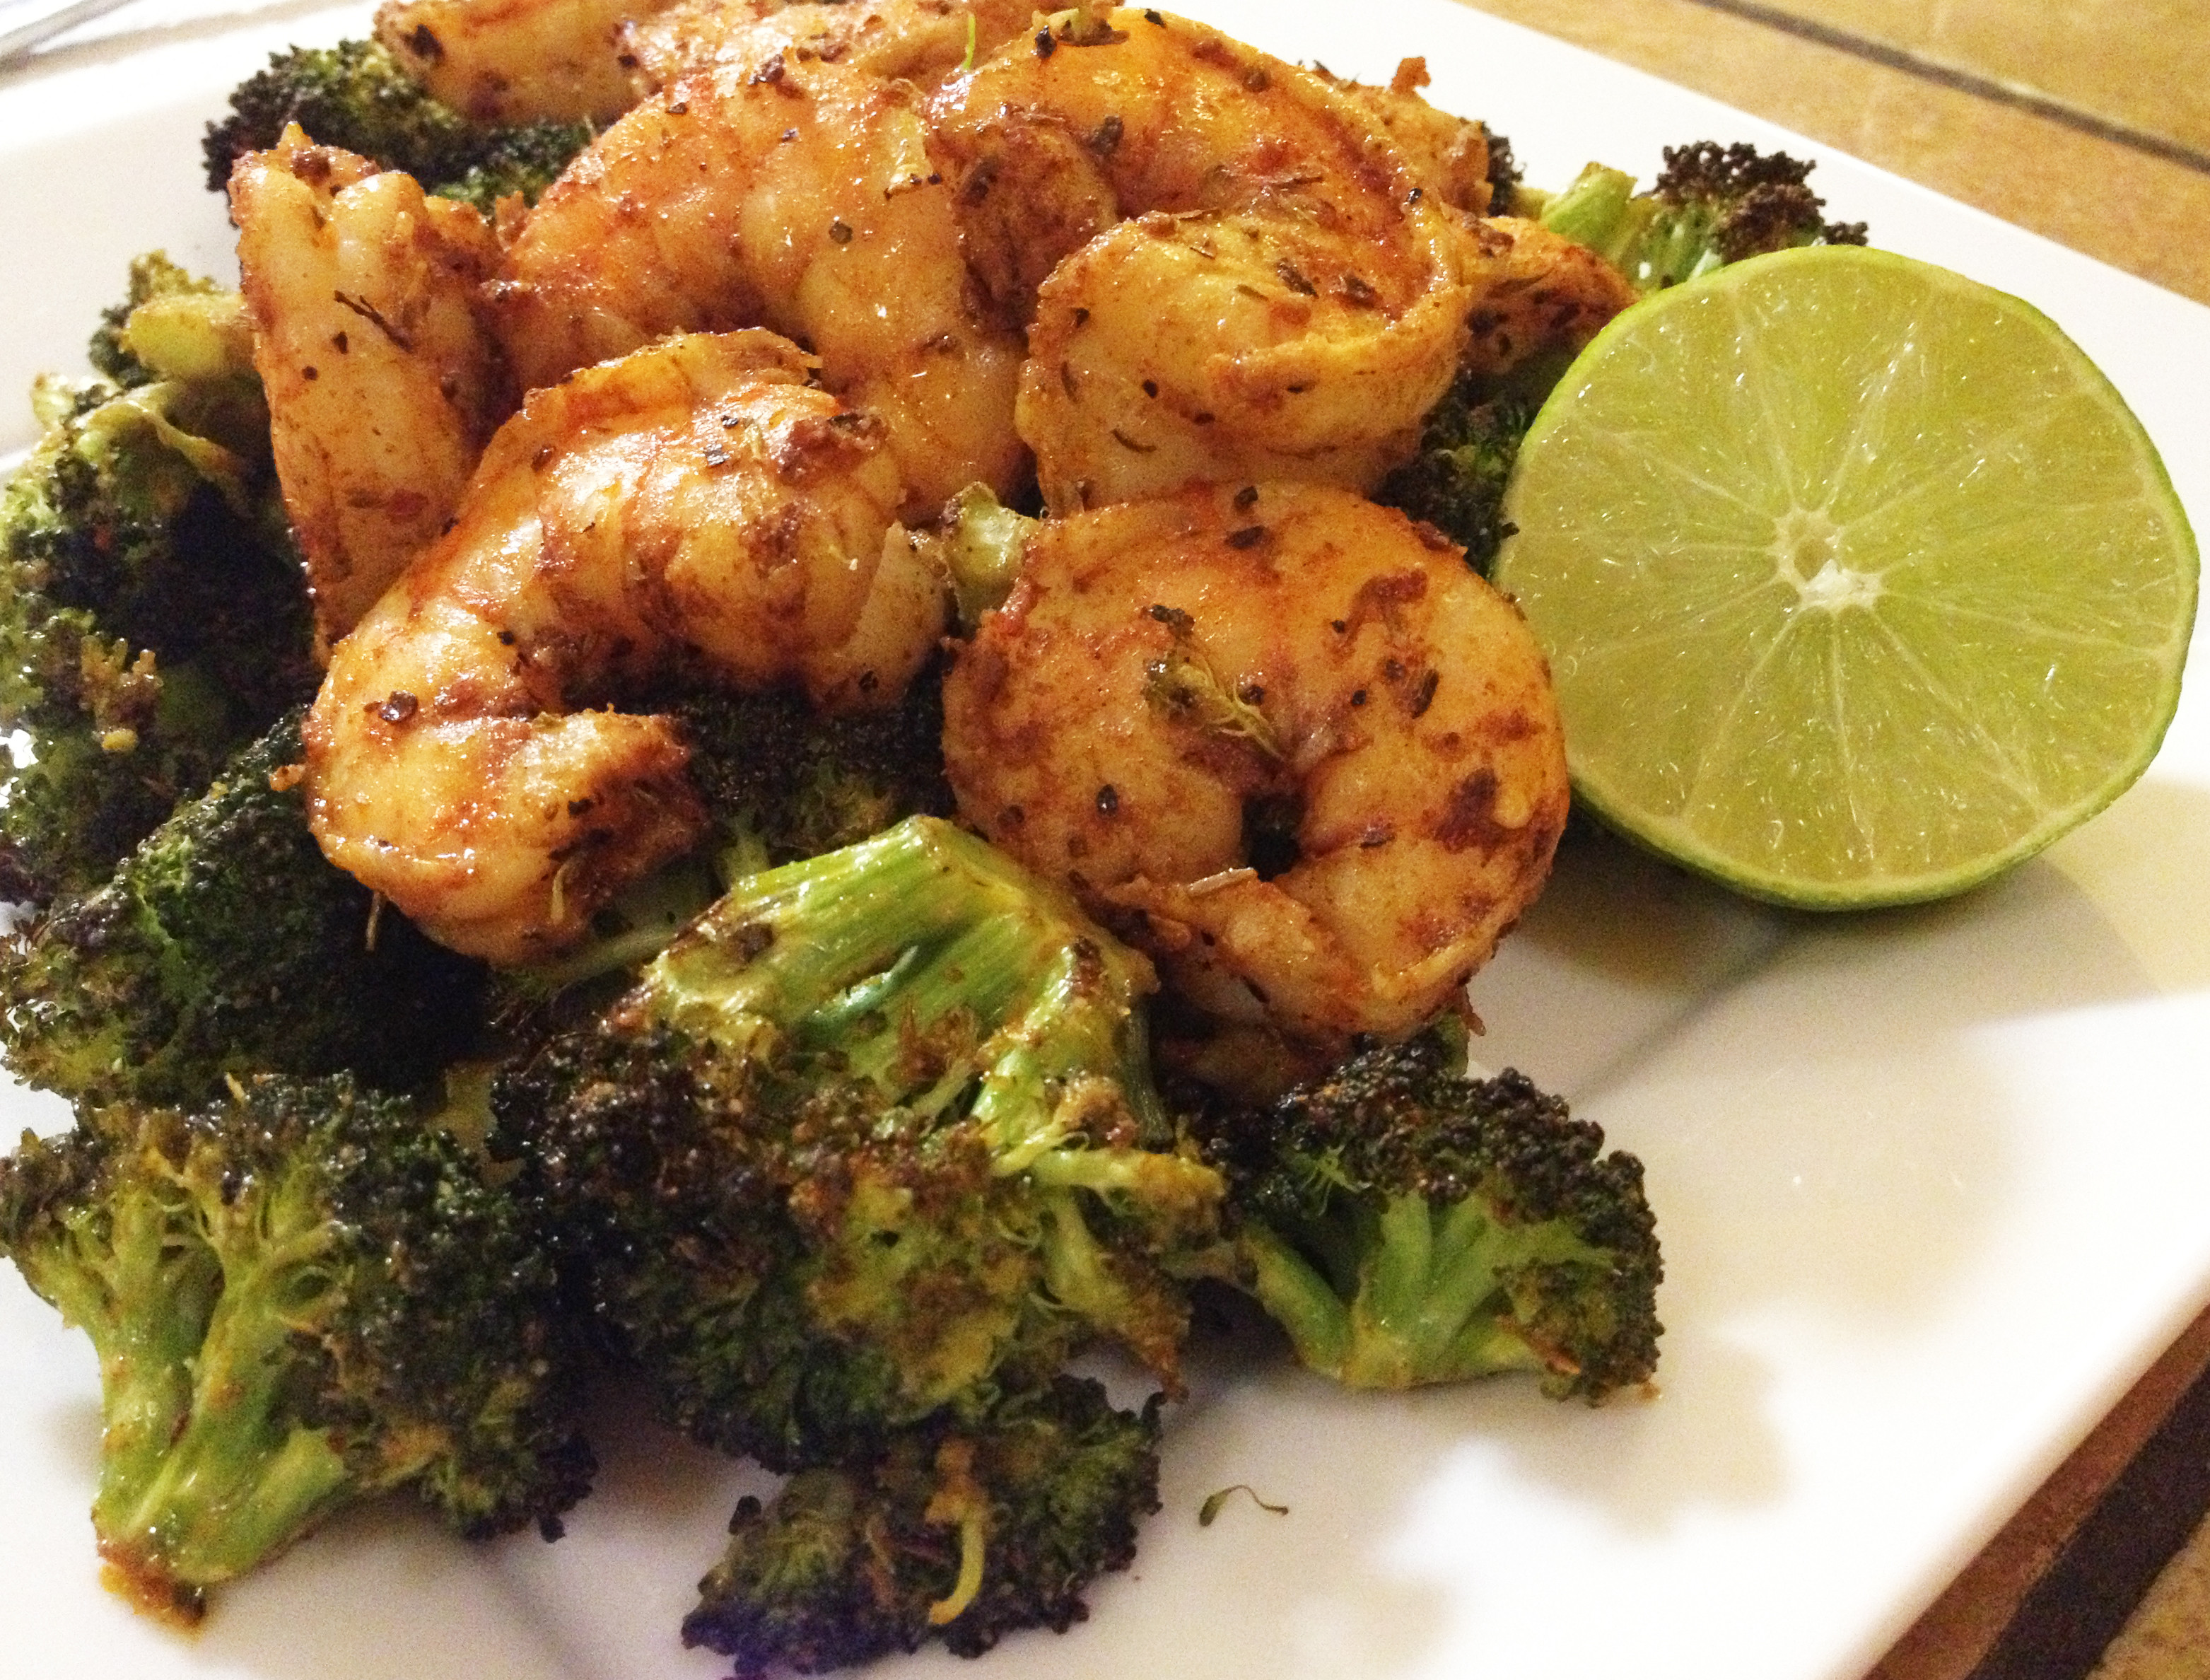 Shrimp And Broccoli  shrimp and broccoli meatified